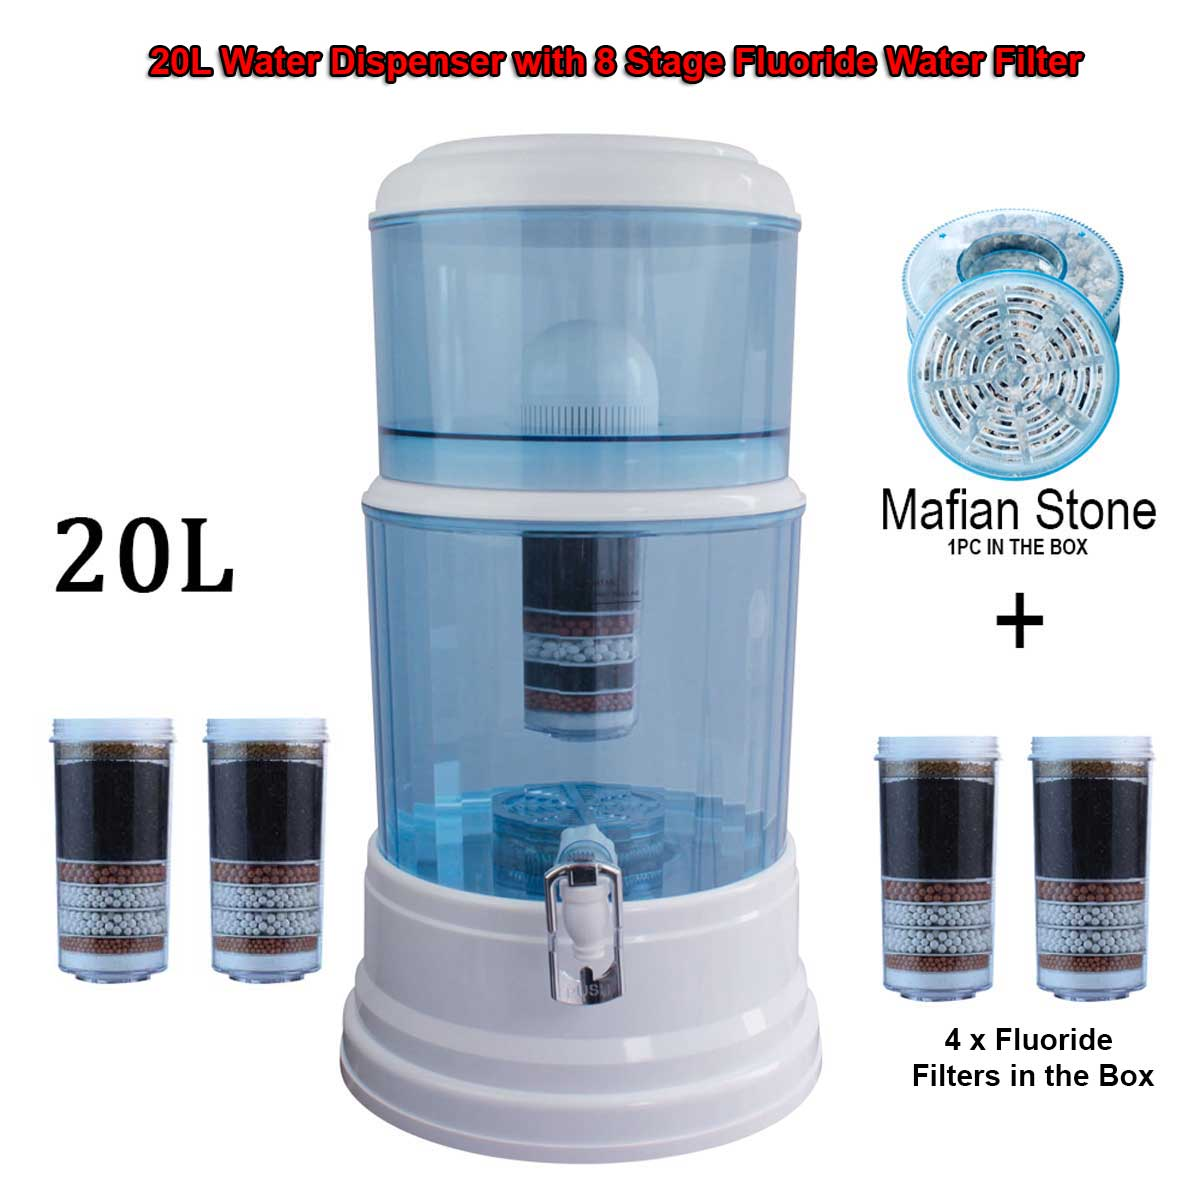 Aimex Water ®️ 8 Stage Fluoride Water Filters Purifier Dispenser Bench Top BPA Free 20L - MDMAustralian